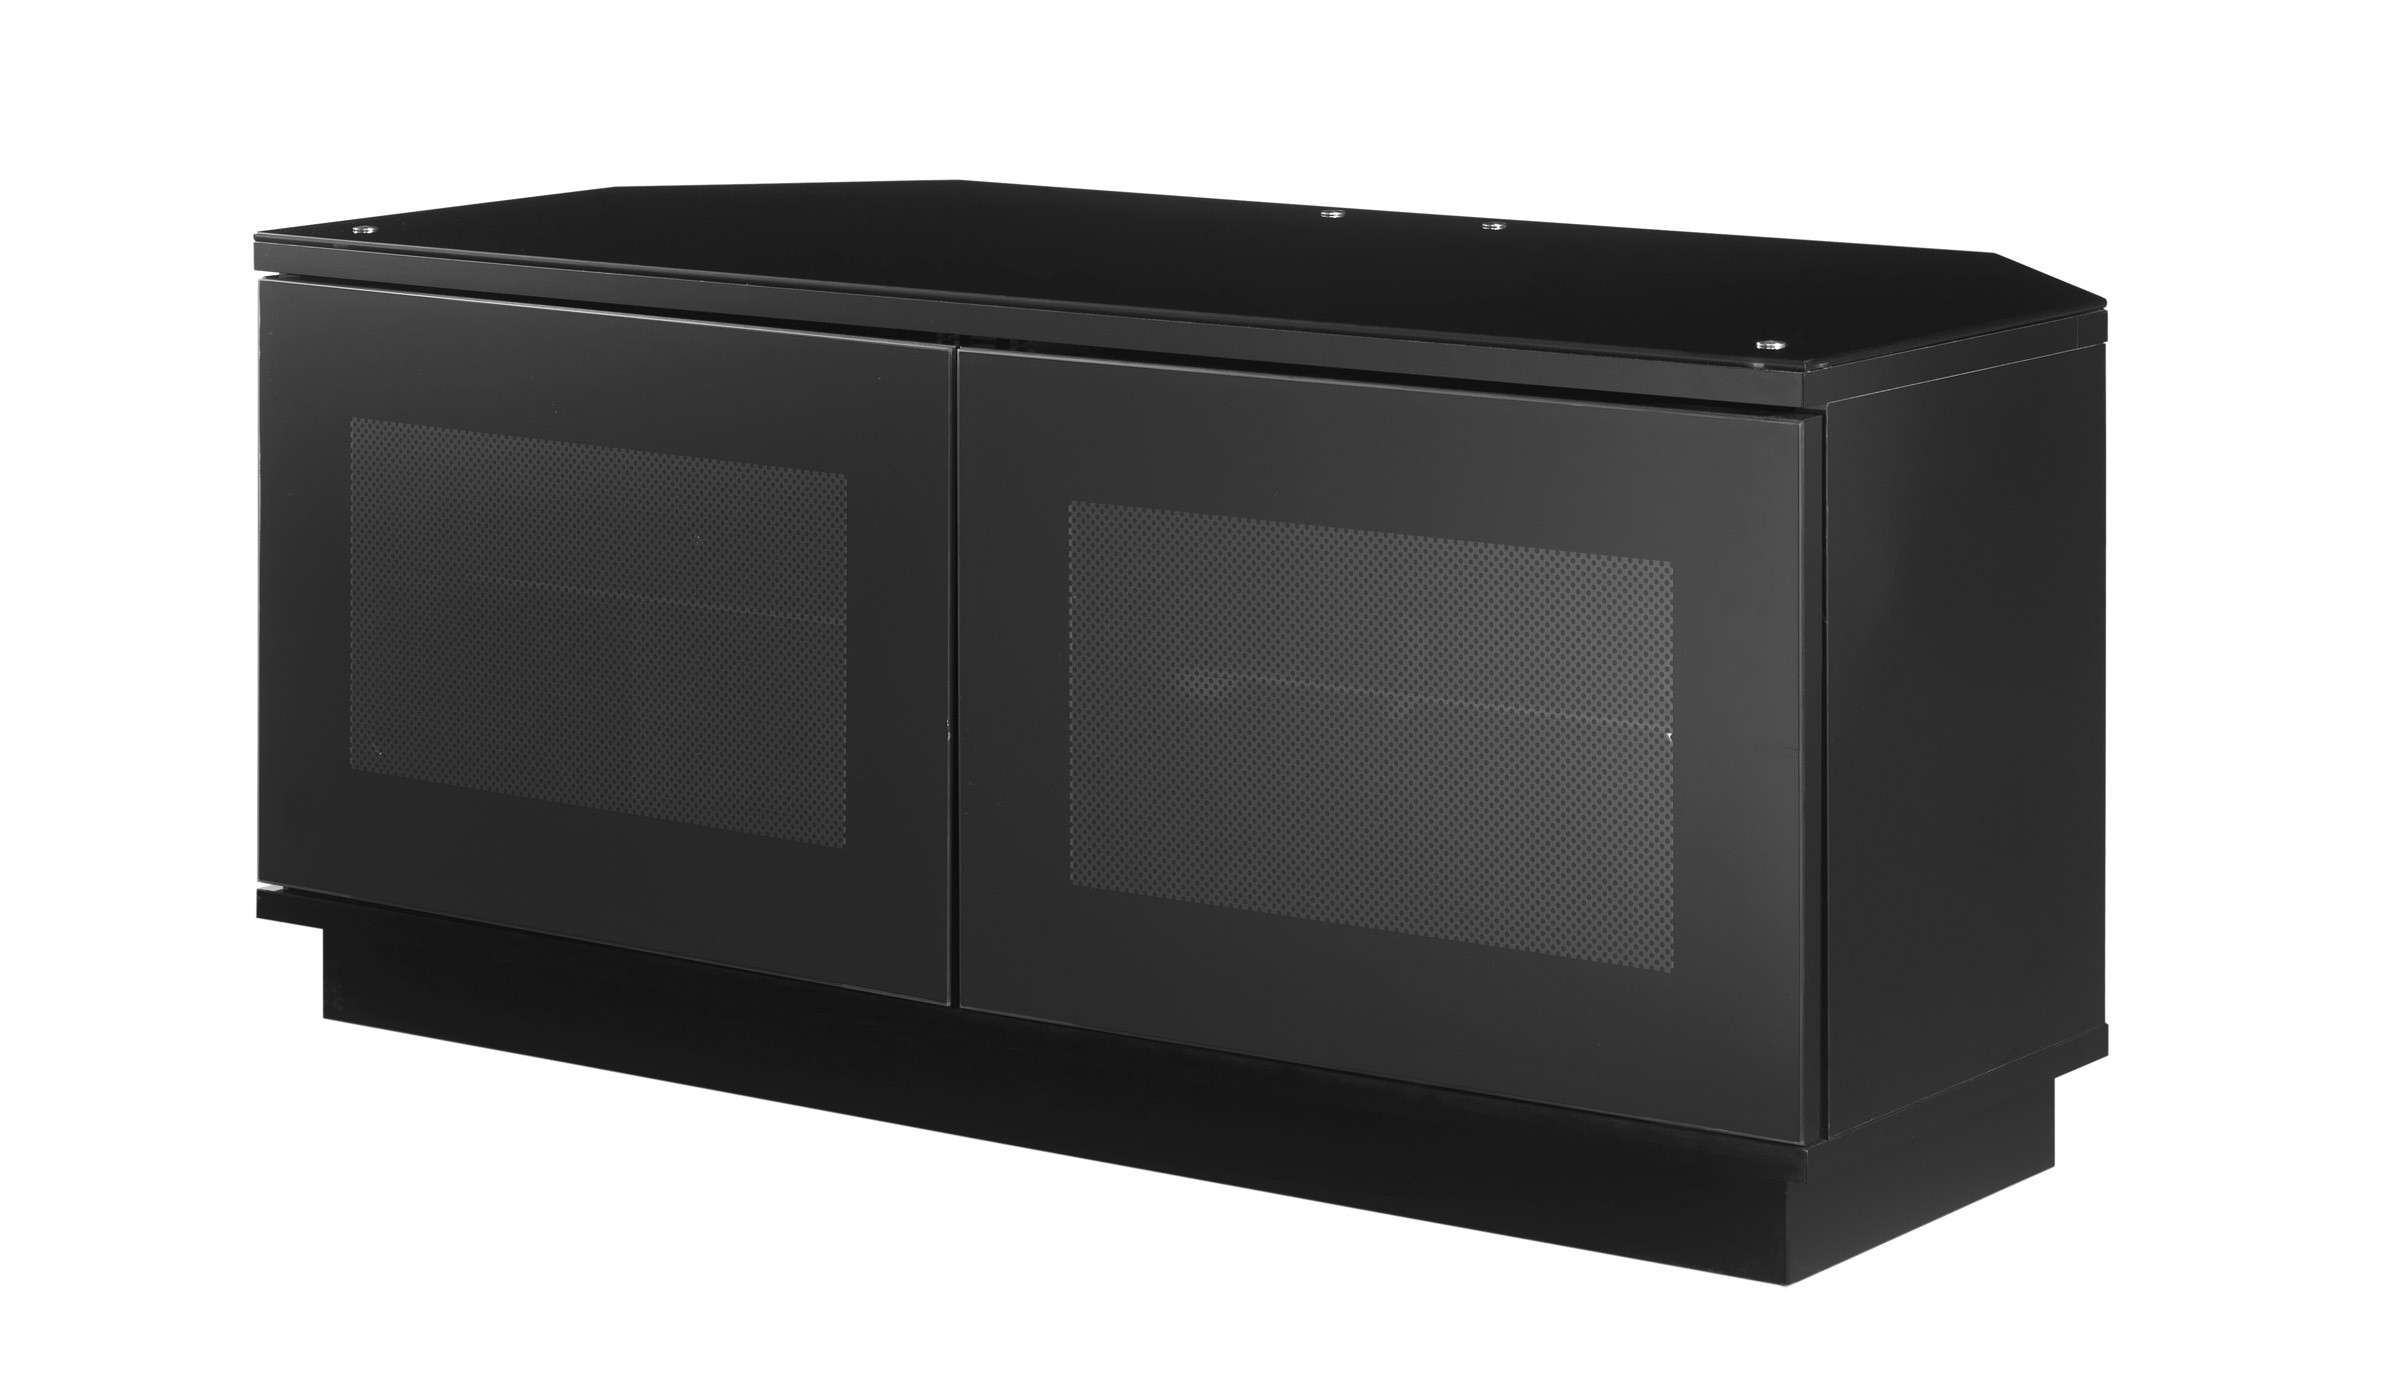 Small Black Tv Stand Cabinet With Door For Corner – Decofurnish For Small Black Tv Cabinets (View 2 of 20)